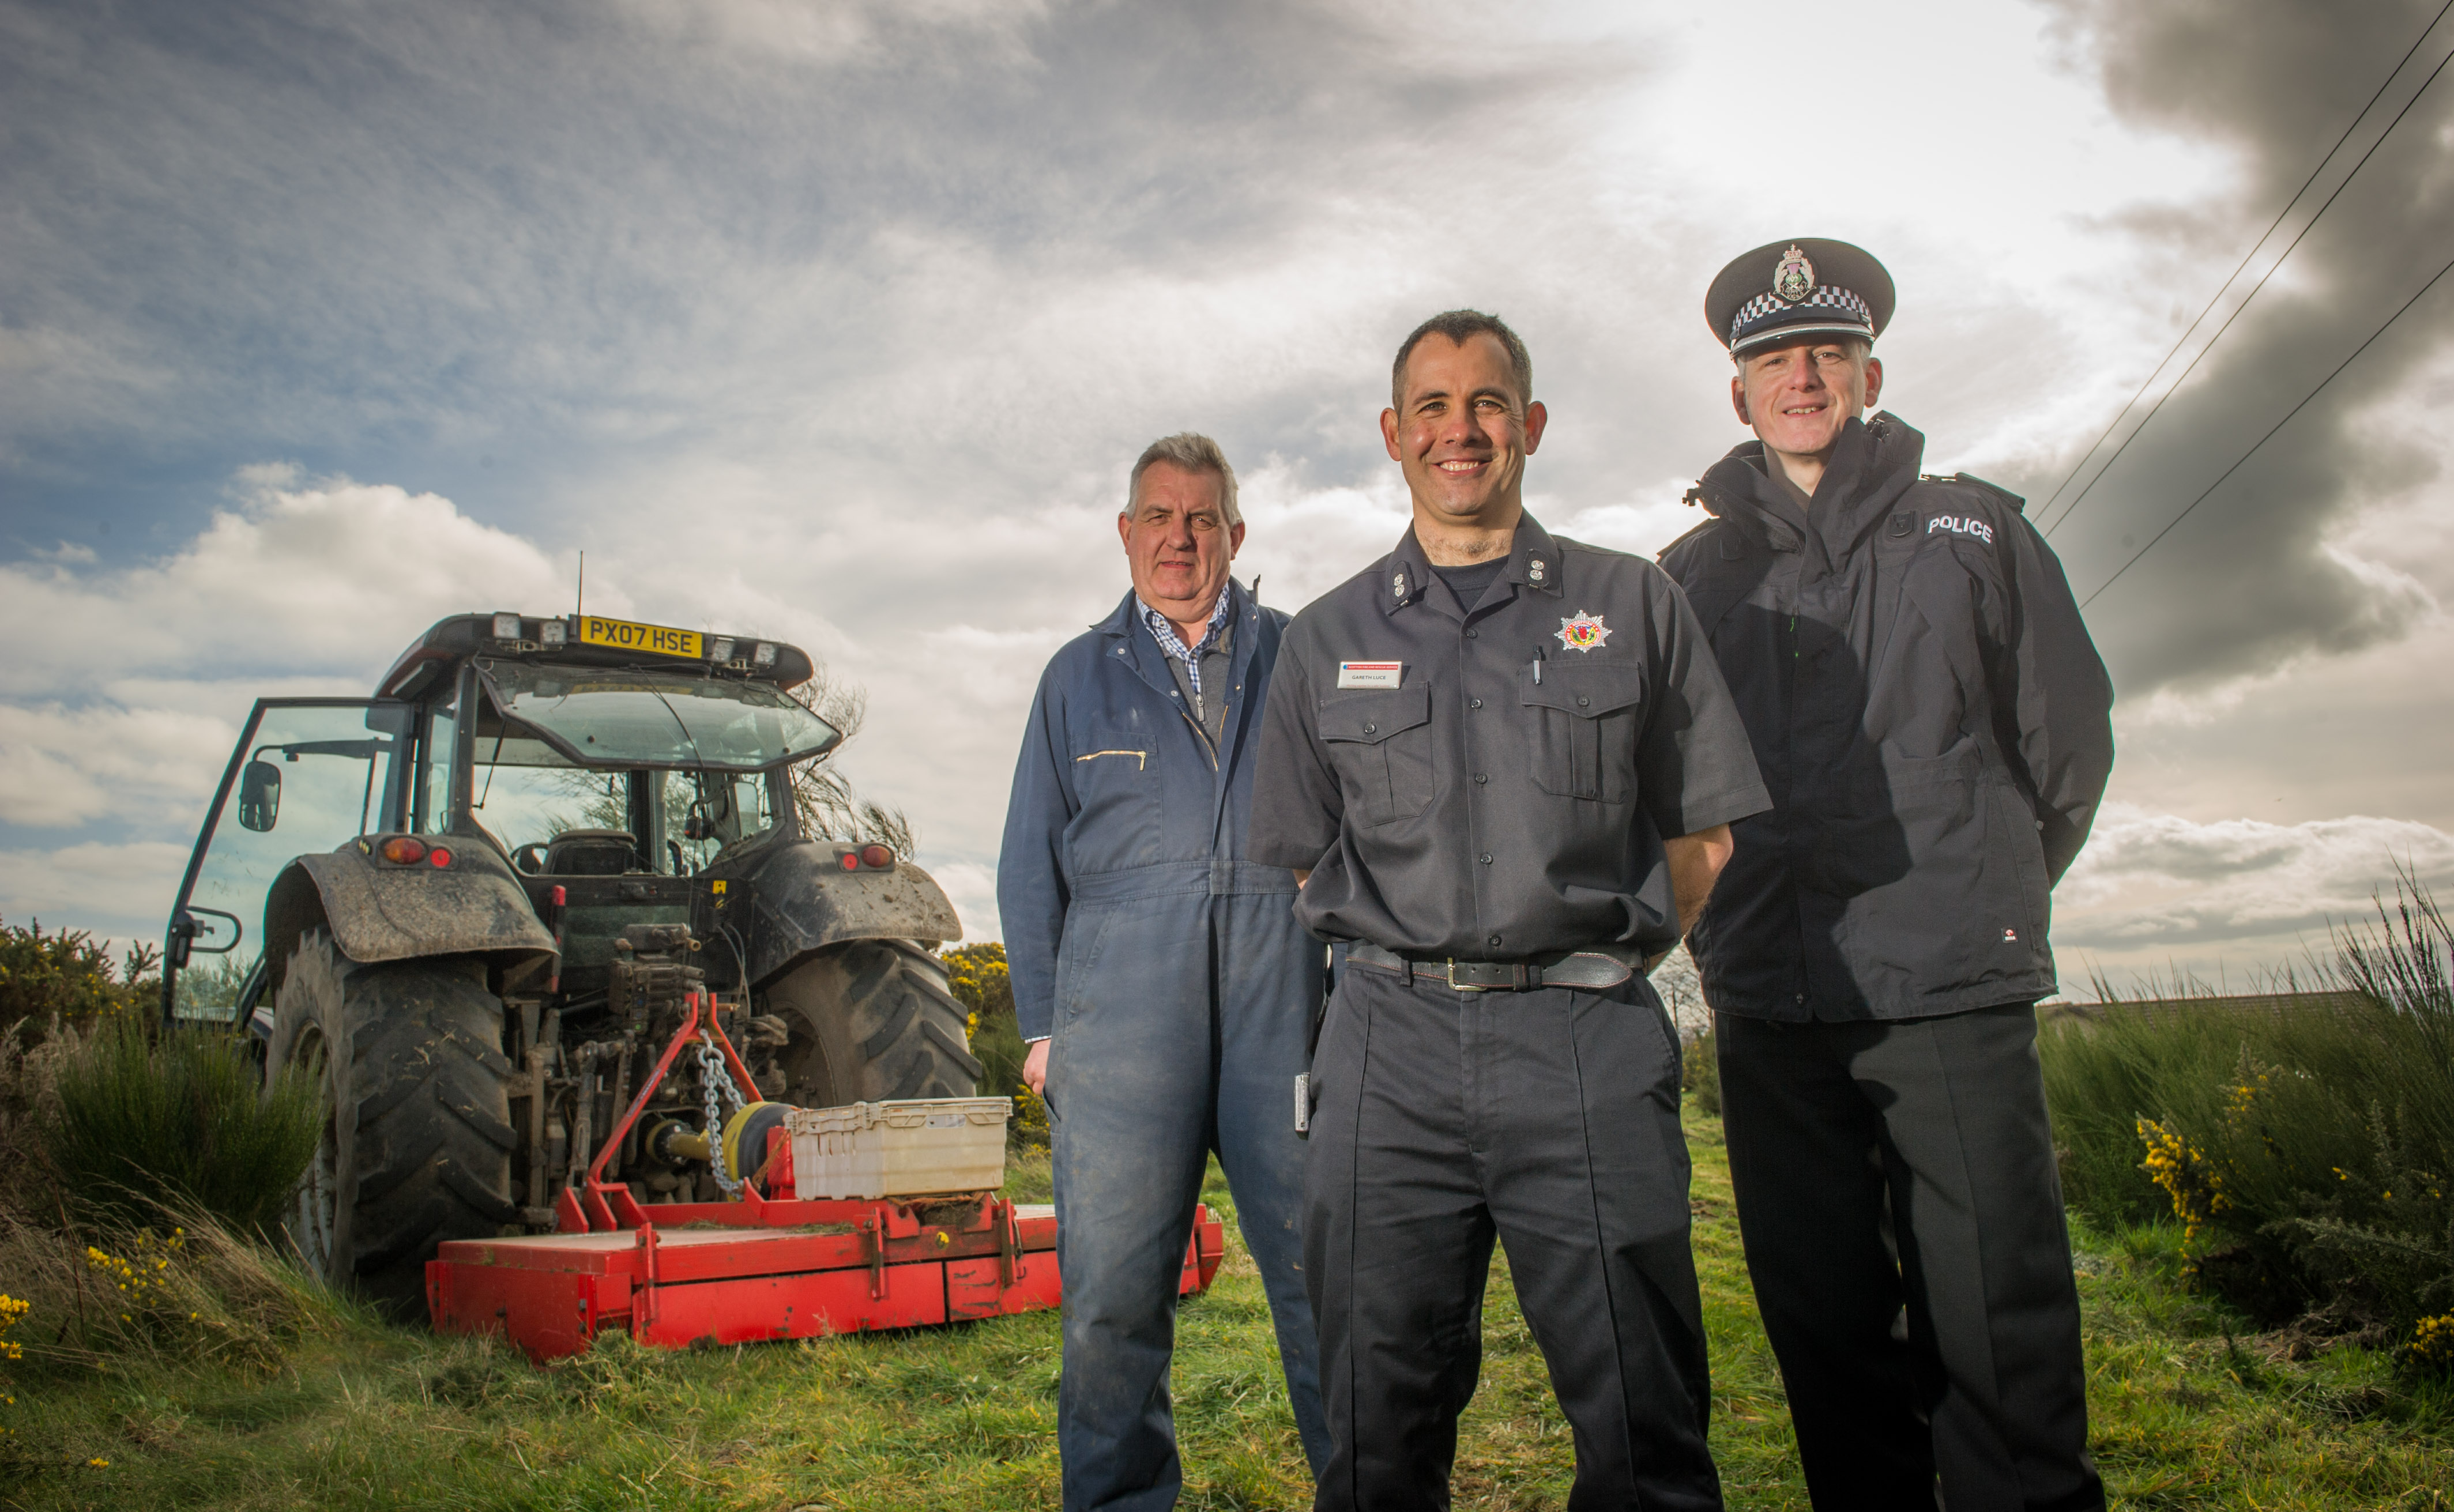 L-R: Pitgaveny Farms manager Martin Birse, Inspector Norman Stevenson, Watch Manager Gareth Luce.